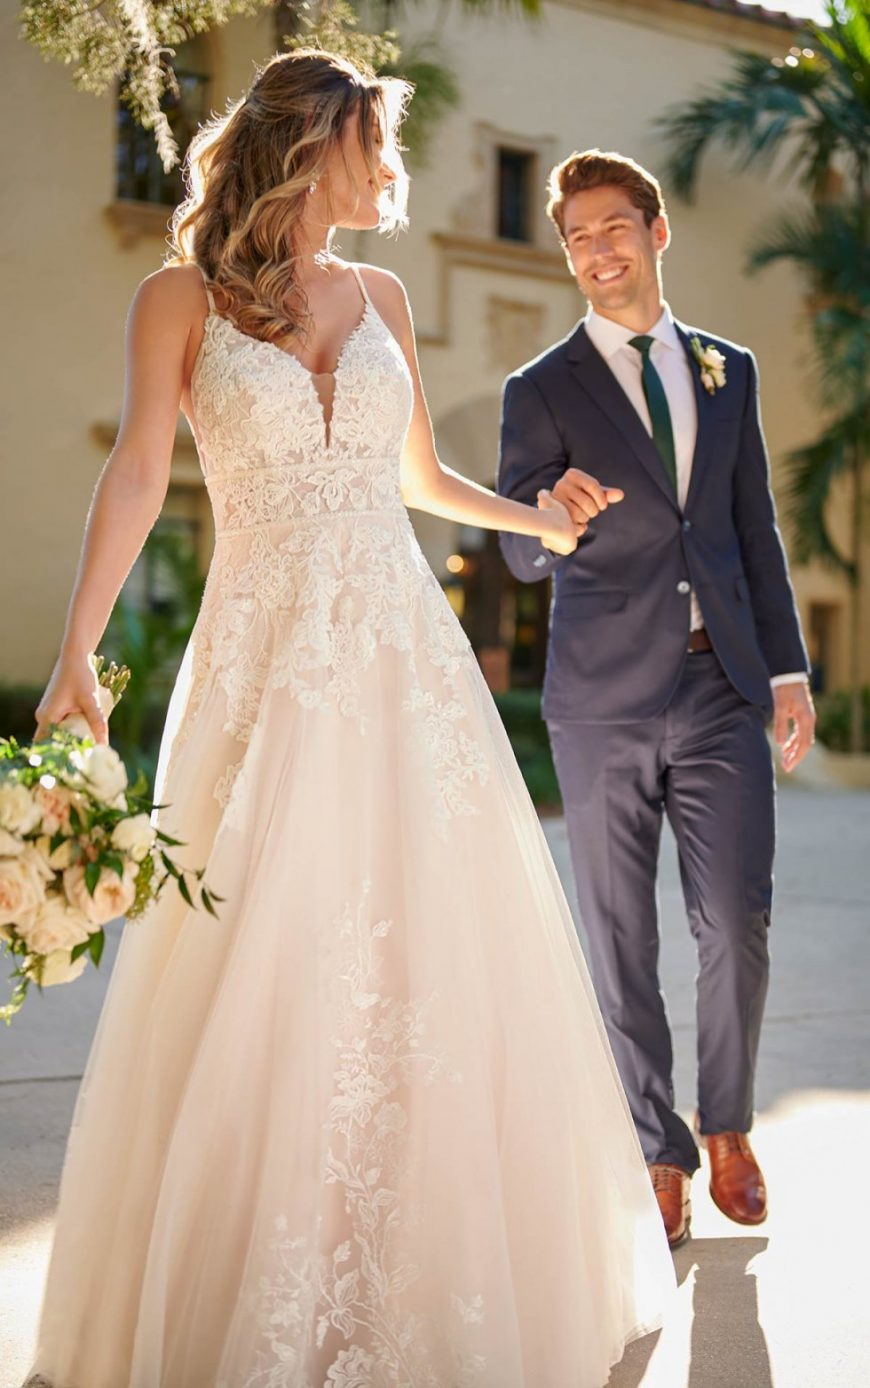 A-line Beaded Lace Slim straps V-side cutouts Wide open back Feature banded waist 7103 Stella York Tuscany Bridal